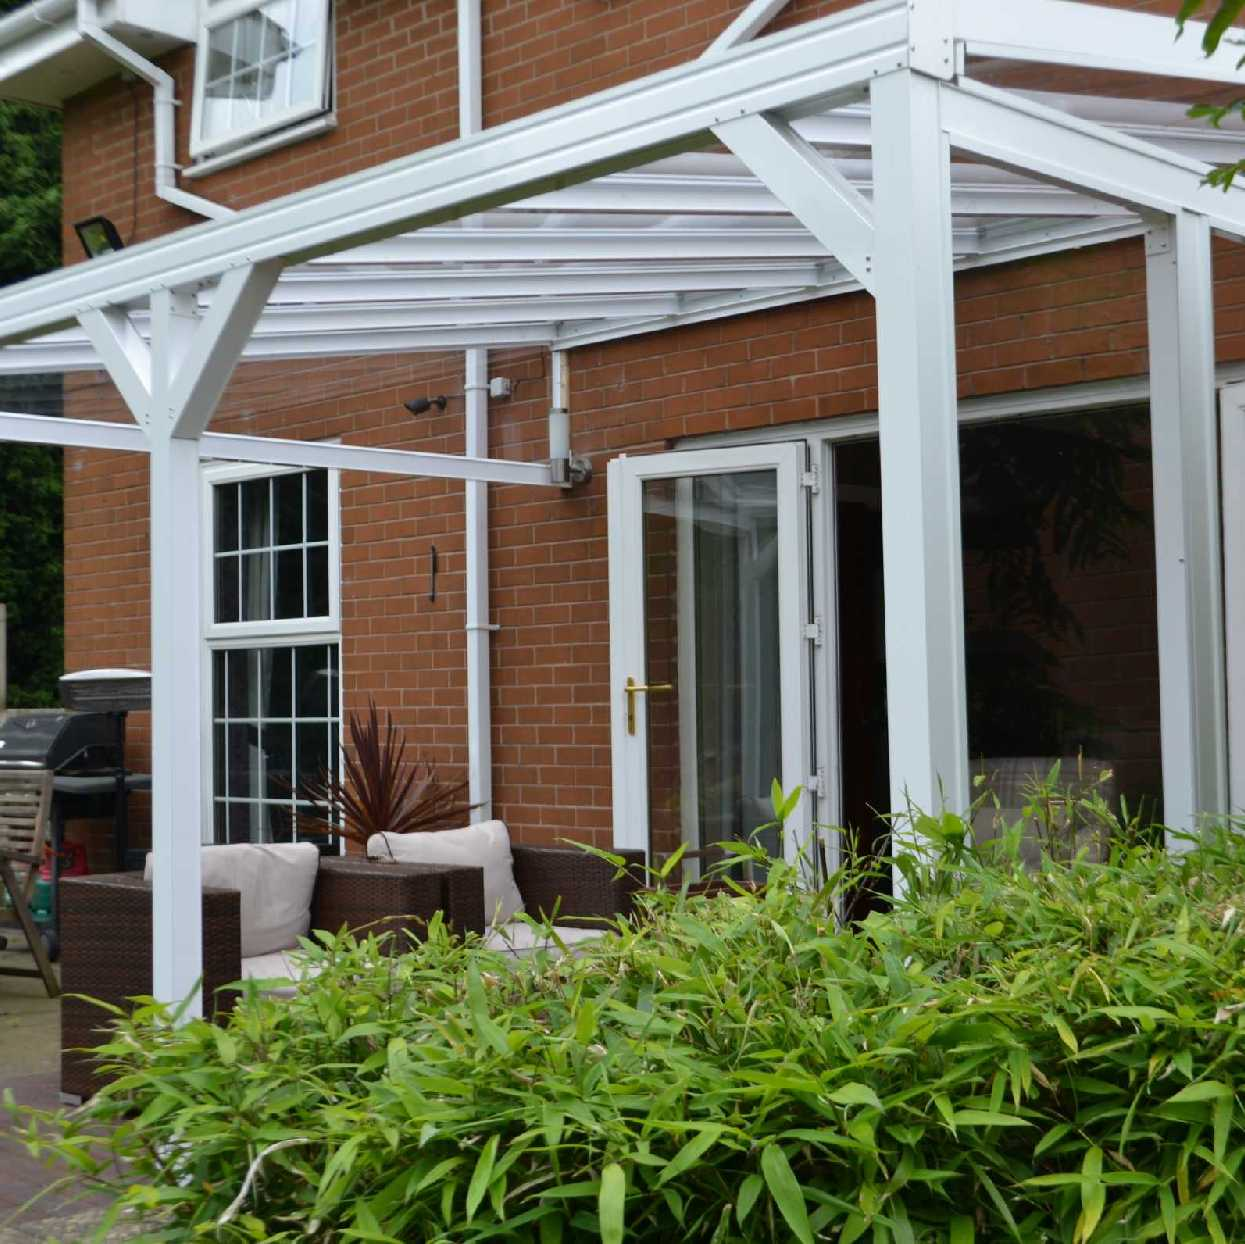 Omega Smart White Lean-To Canopy UNGLAZED for 6mm Glazing - 9.1m (W) x 2.5m (P), (5) Supporting Posts from Omega Build